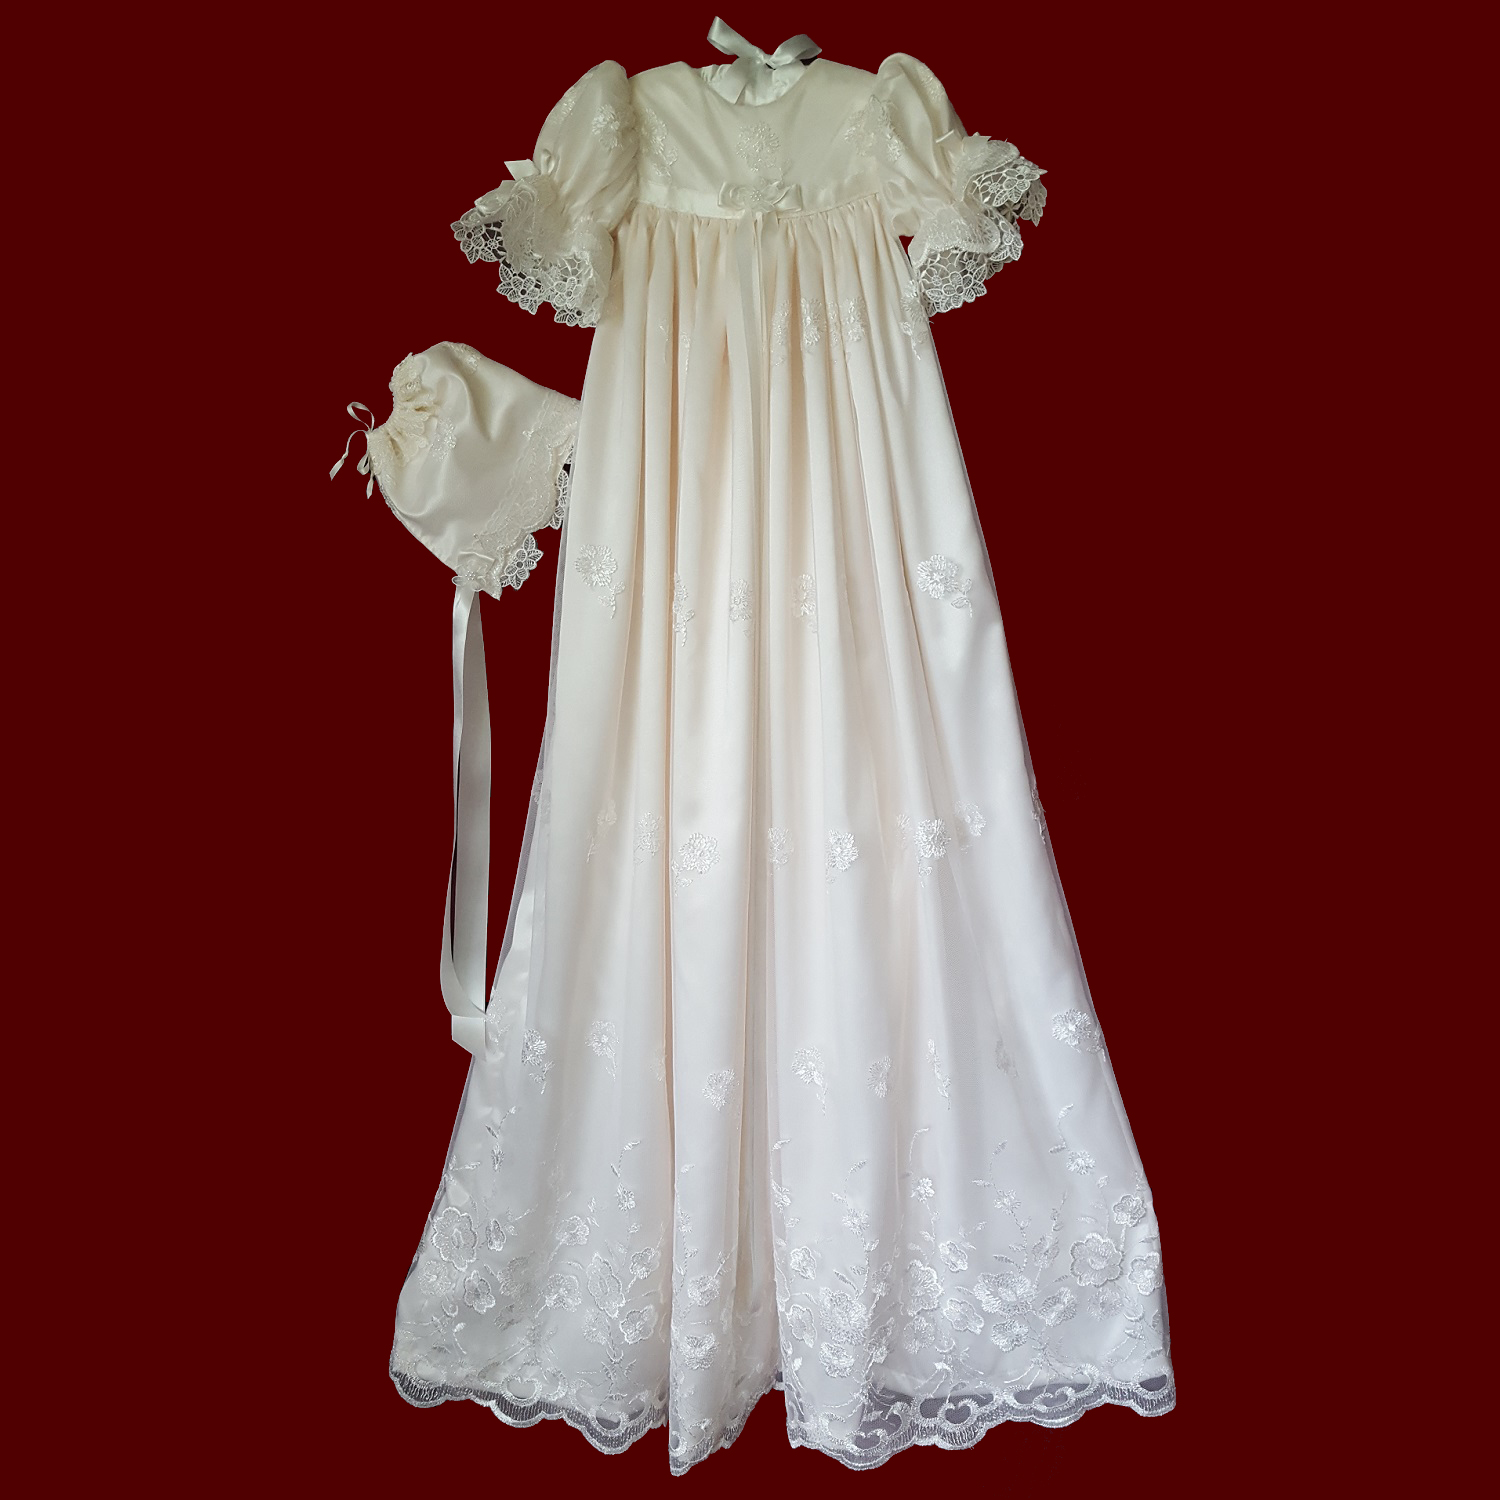 Ivory Iridescent Sparkle Embroidered Netting Christening Gown & Bonnet, Size 3-6 Months